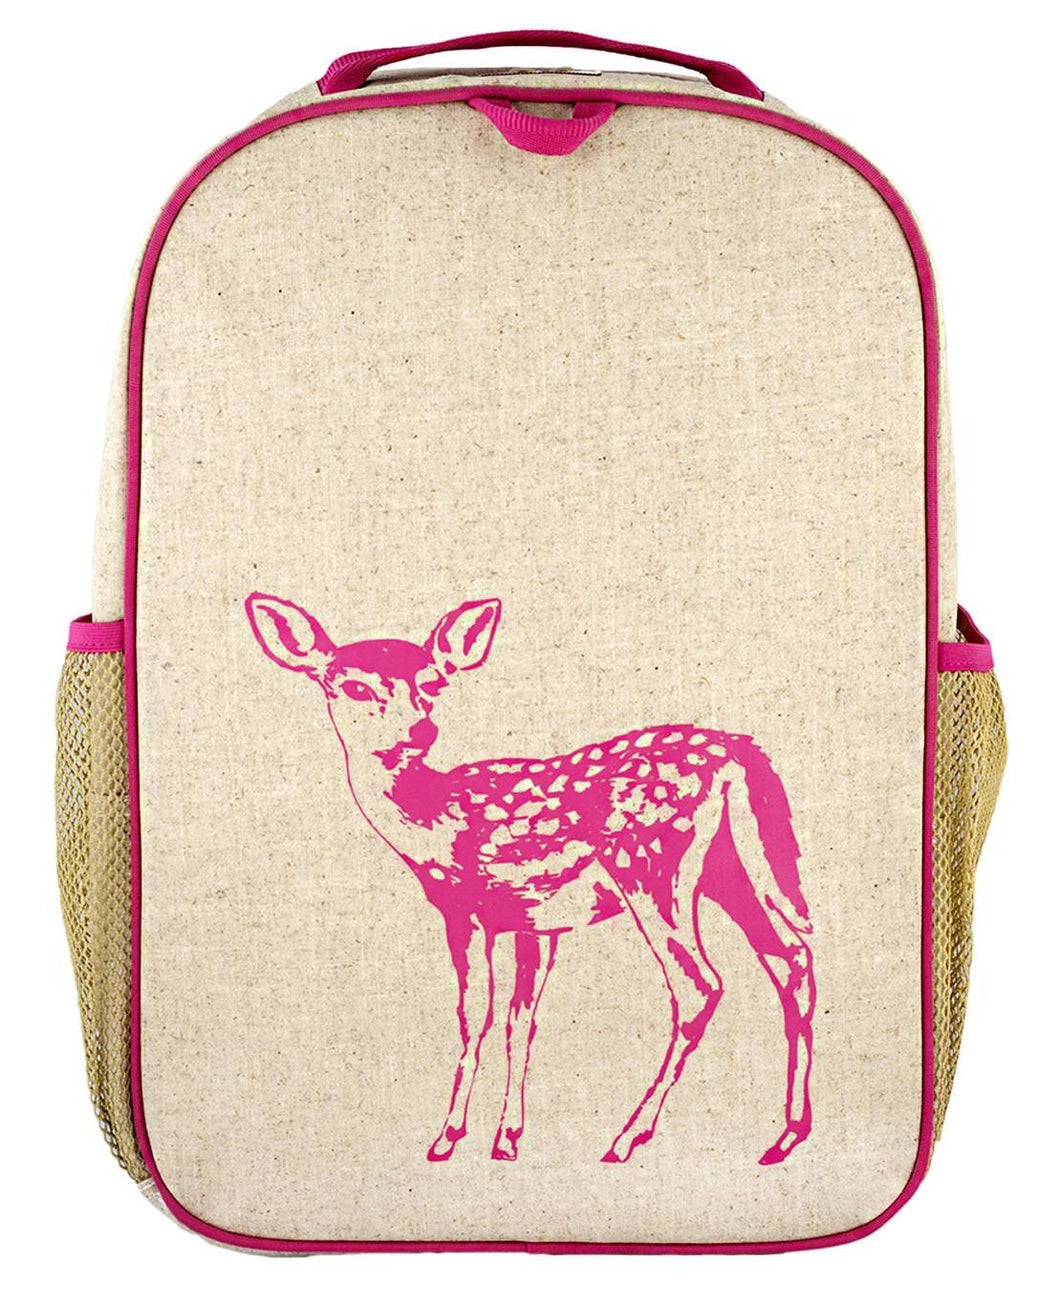 Fawn School age bag - Nana Belle